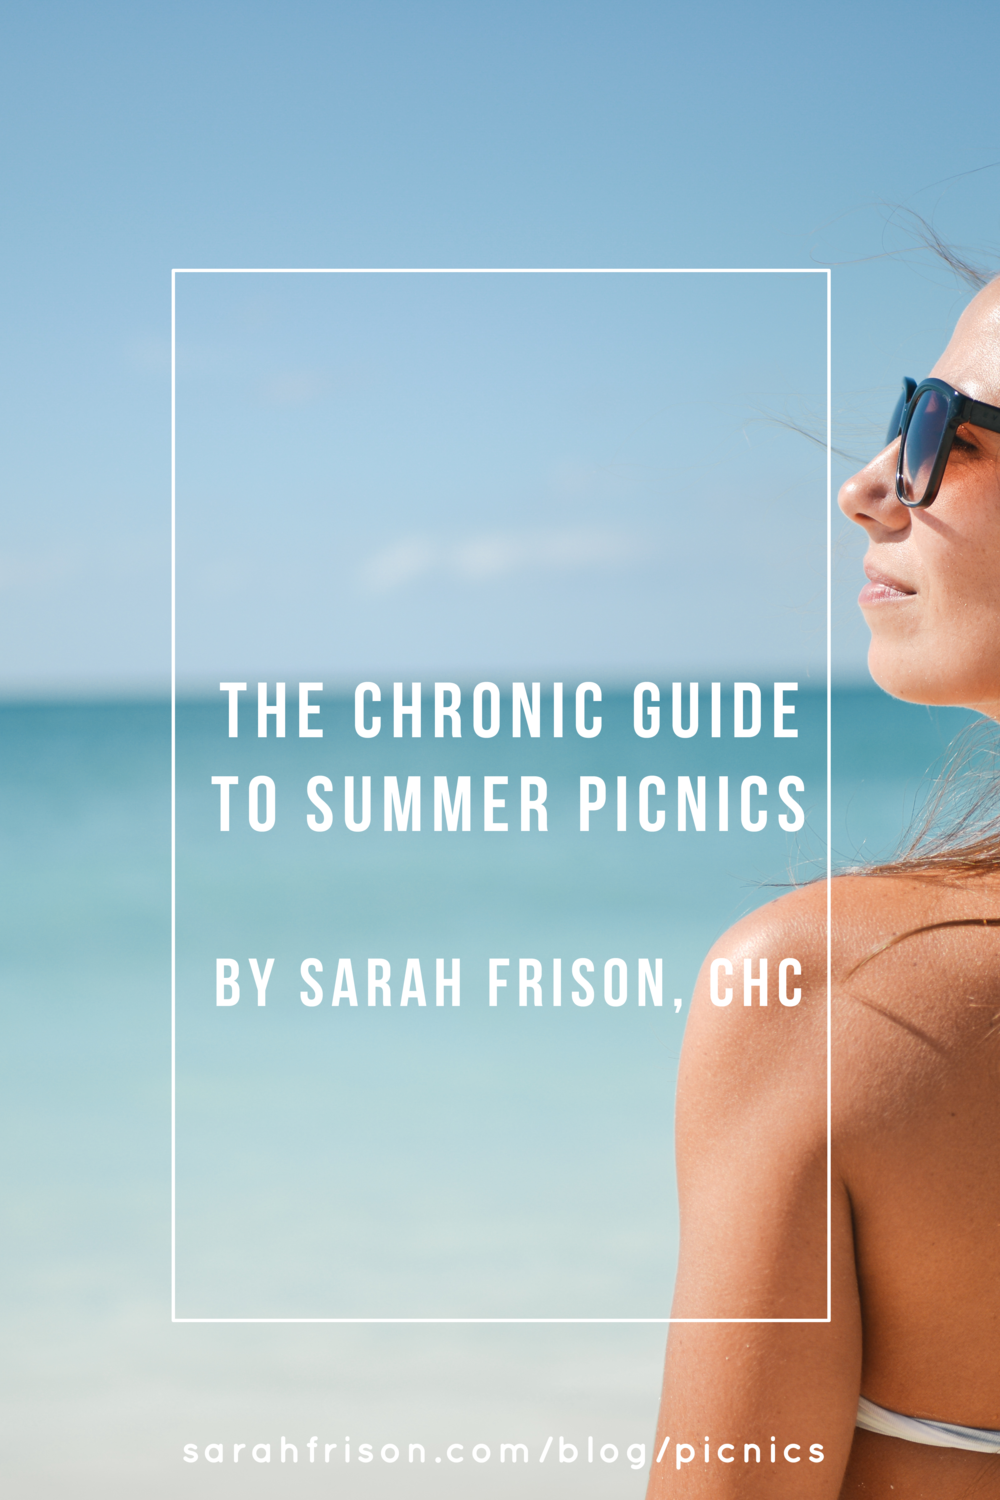 The Chronic Guide to Summer Picnics